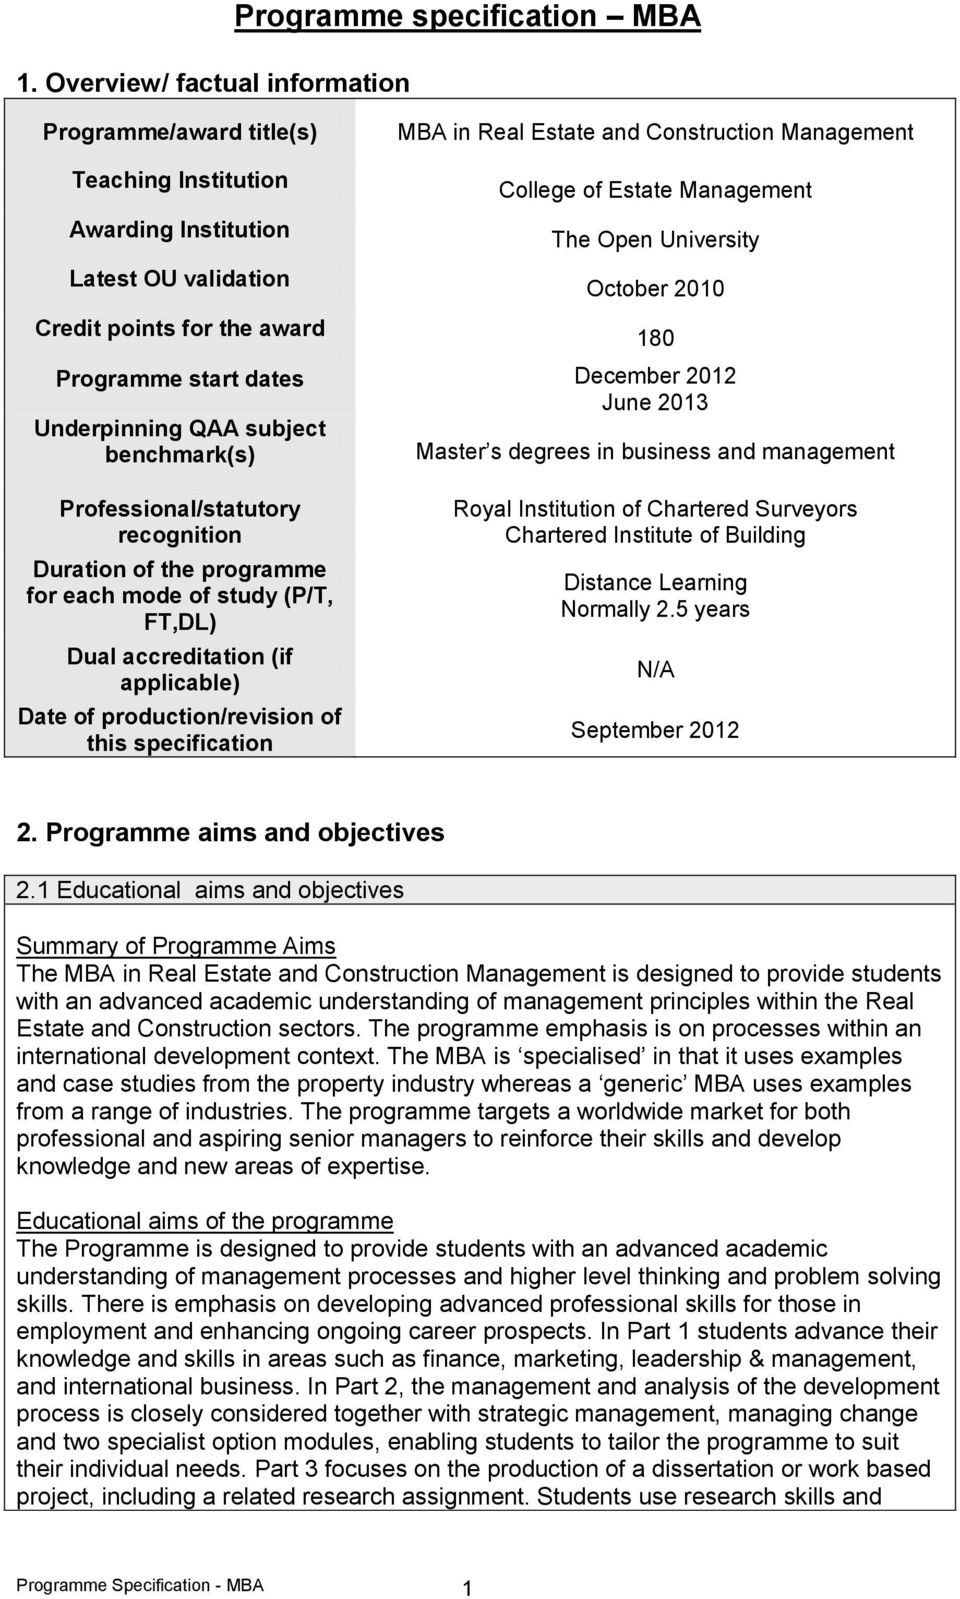 management 180 Professional/statutory recognition Duration of the programme for each mode of study (P/T, FT,DL) Dual accreditation (if applicable) Date of production/revision of this specification